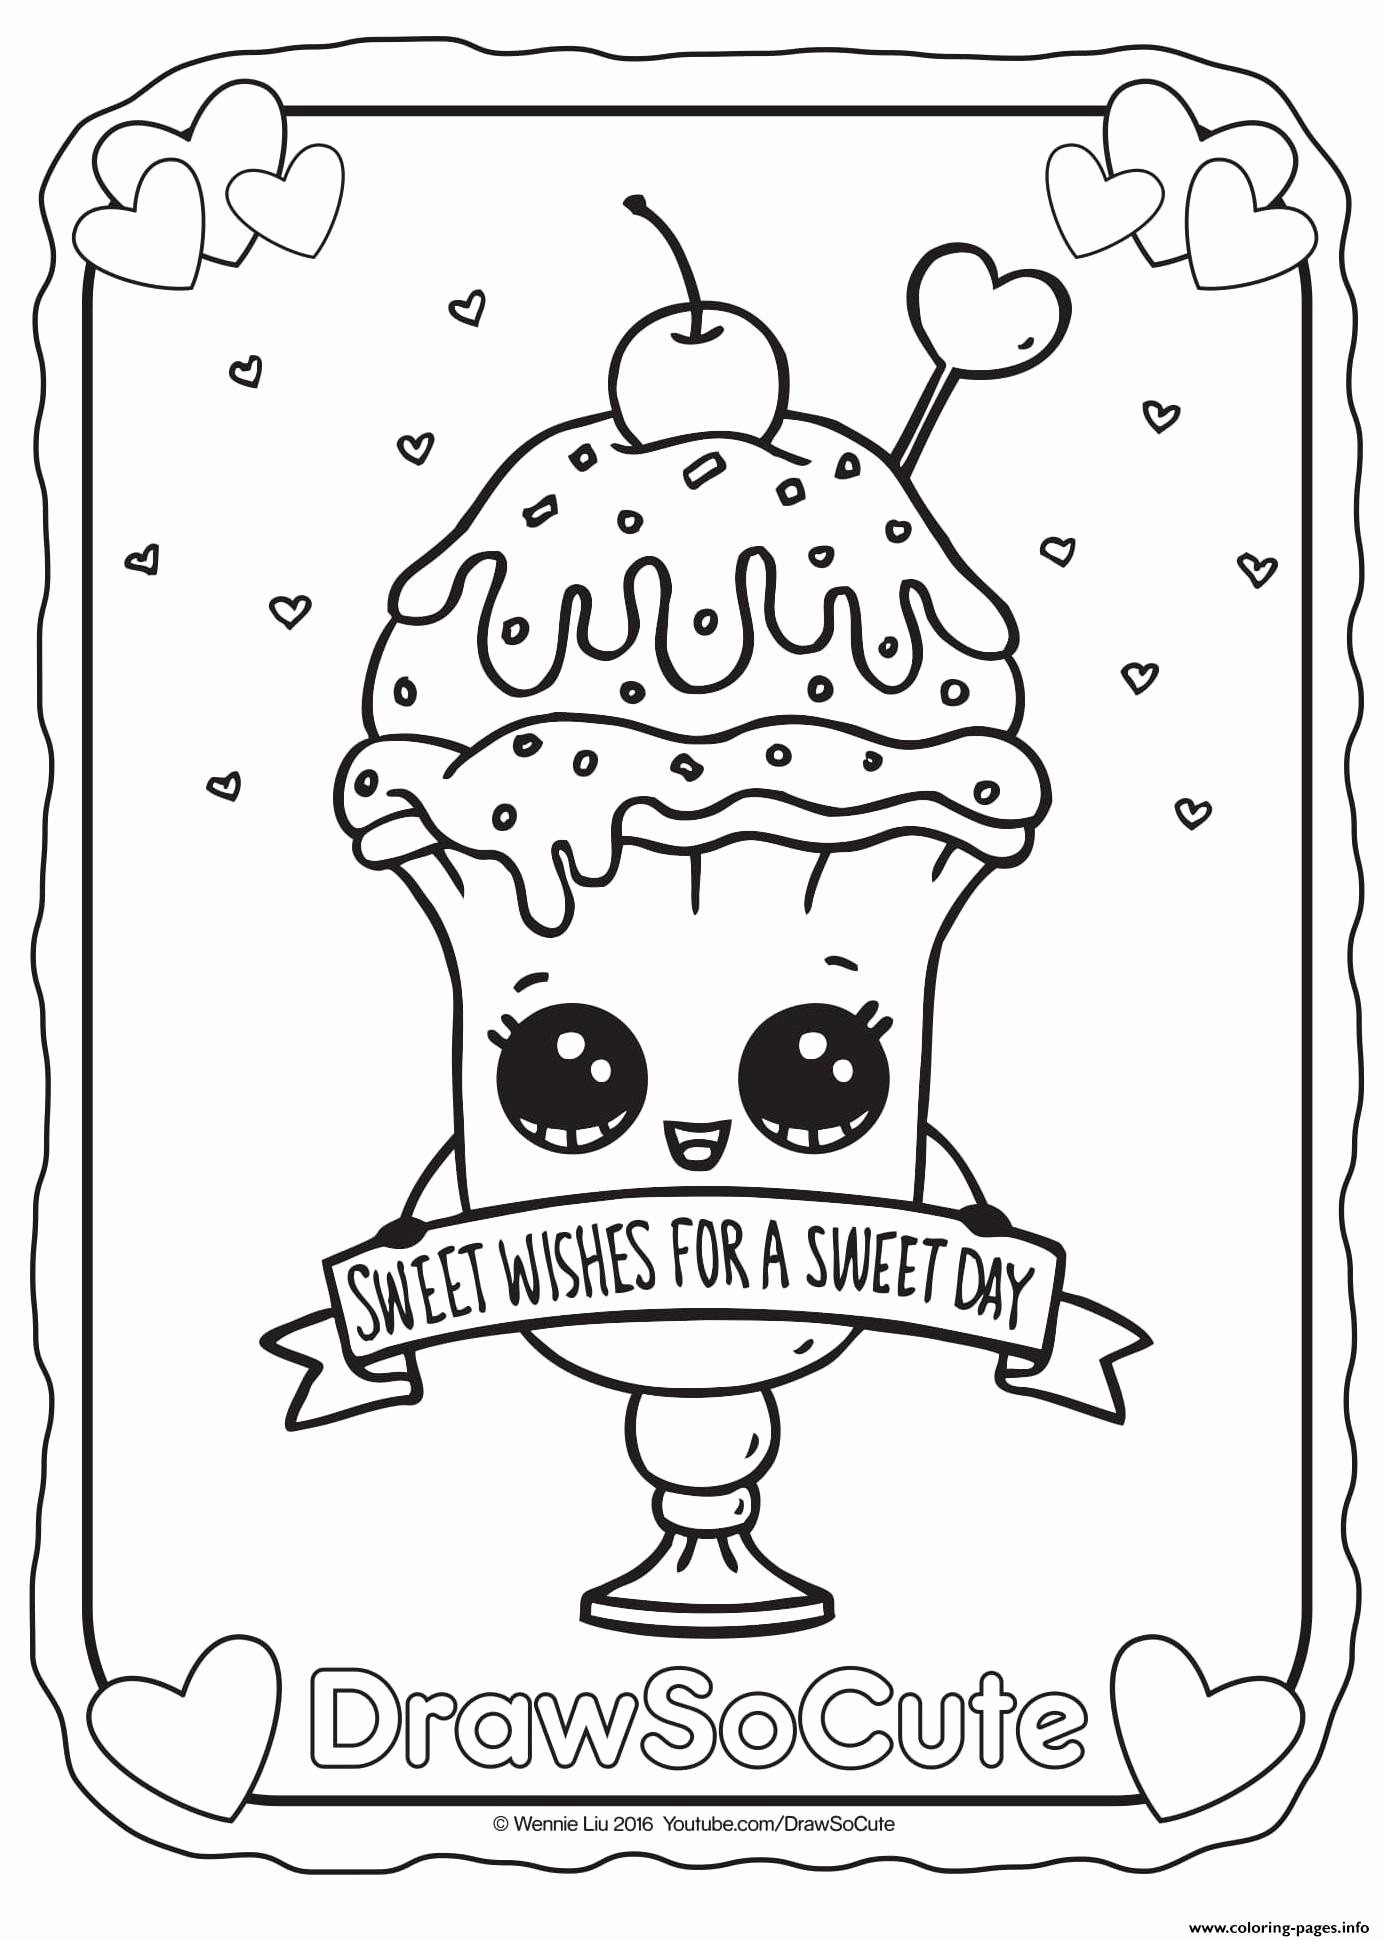 Coloring Worksheets for Preschoolers top Coloring Pages Printable Coloring Pages for Adults Art 5